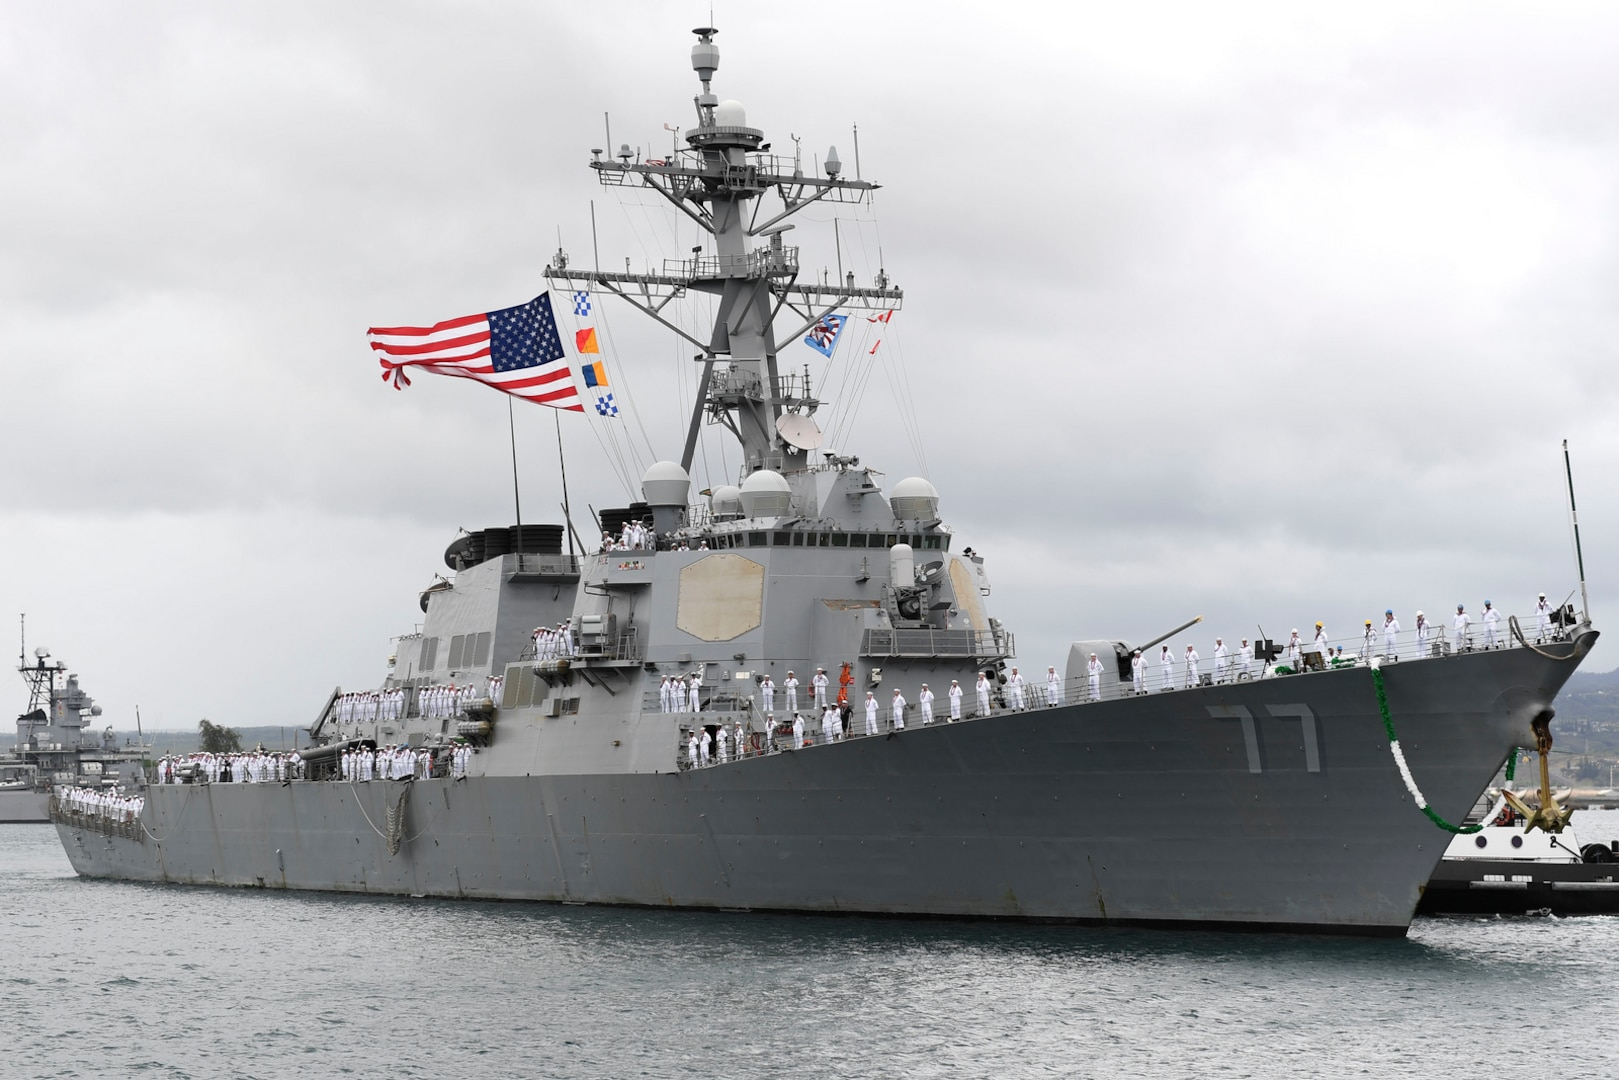 USS O'Kane returns to Pearl Harbor after deployment